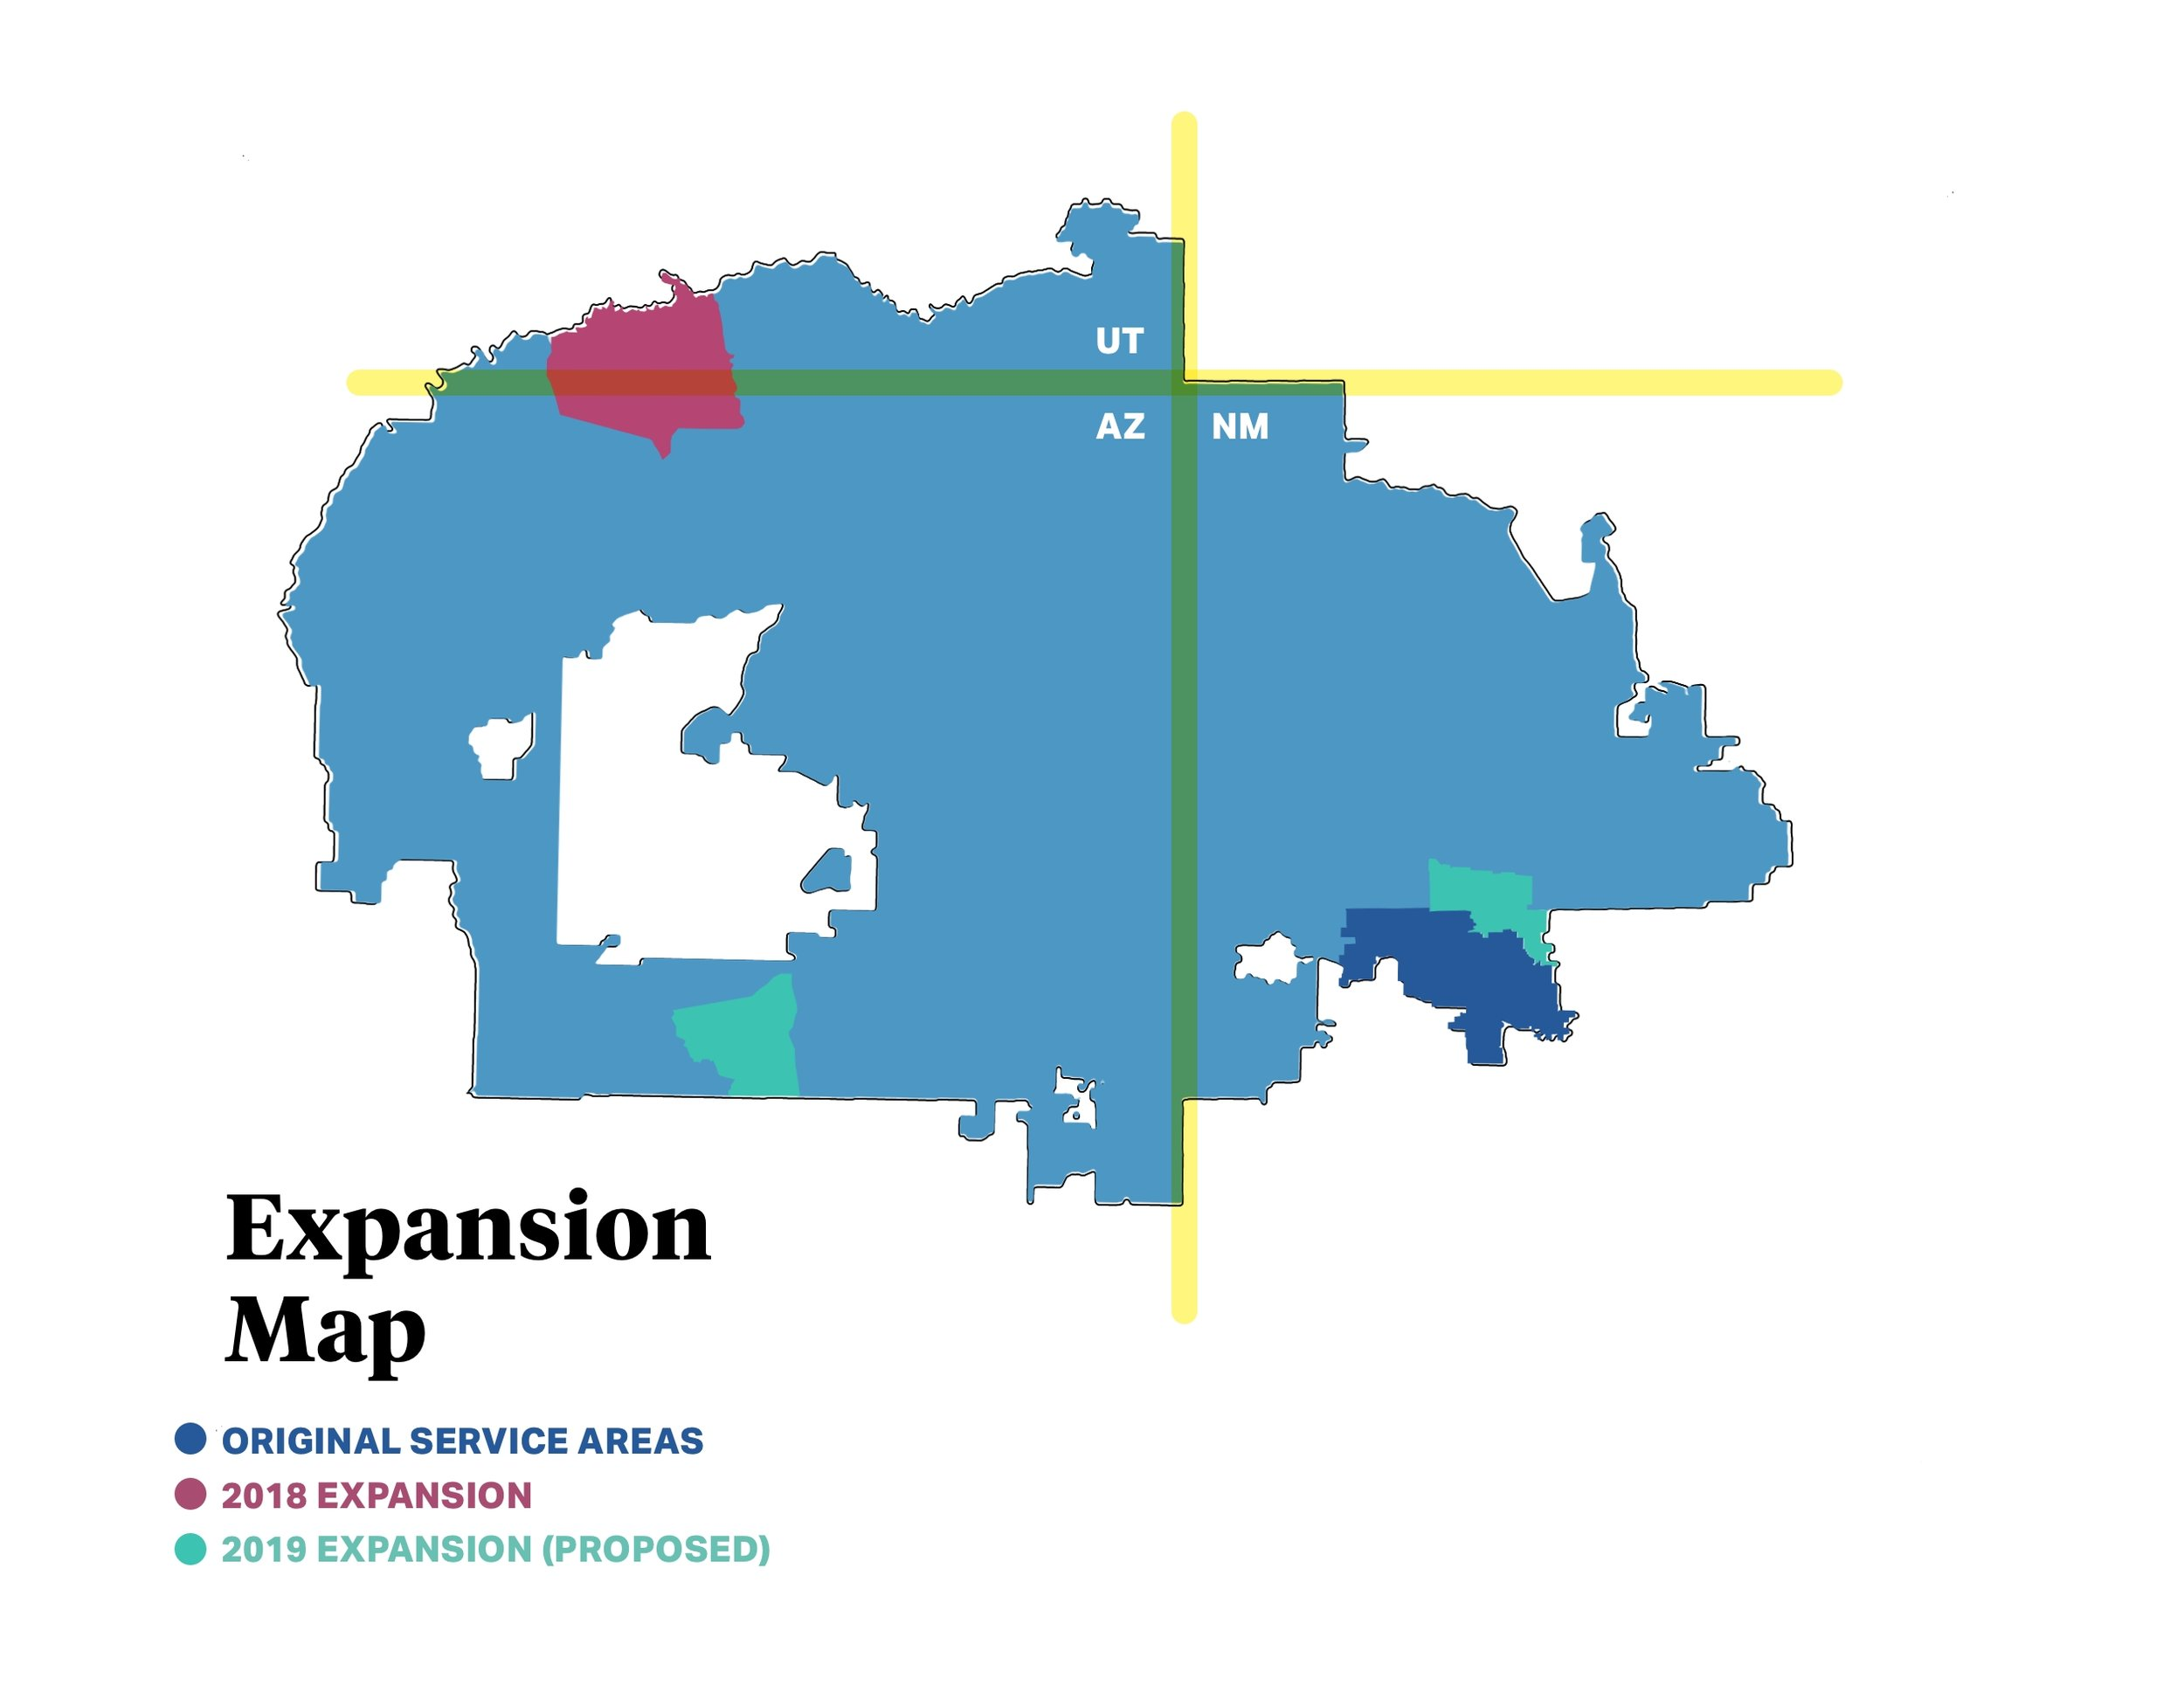 expansion-map.jpg